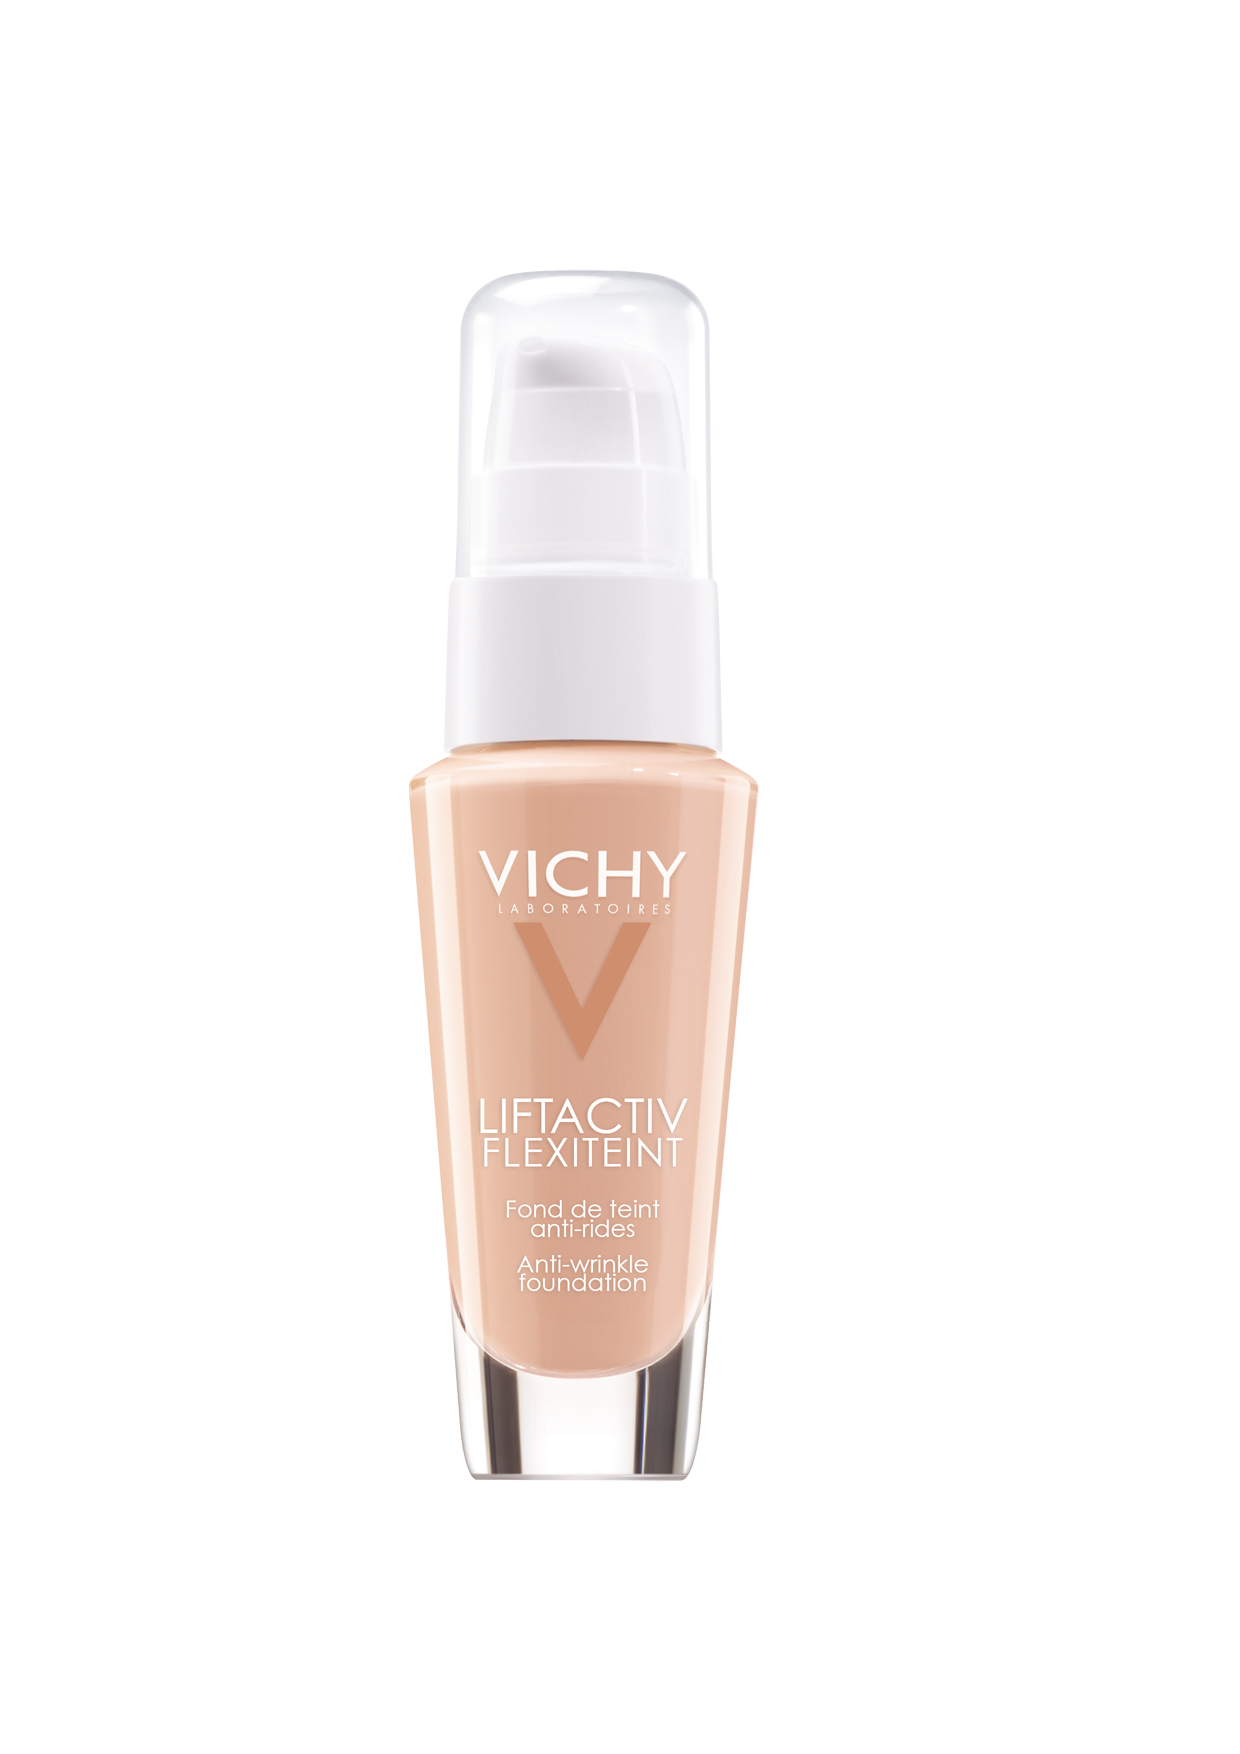 Vichy Liftactiv Flexilift Teint No35 Sand 30ml